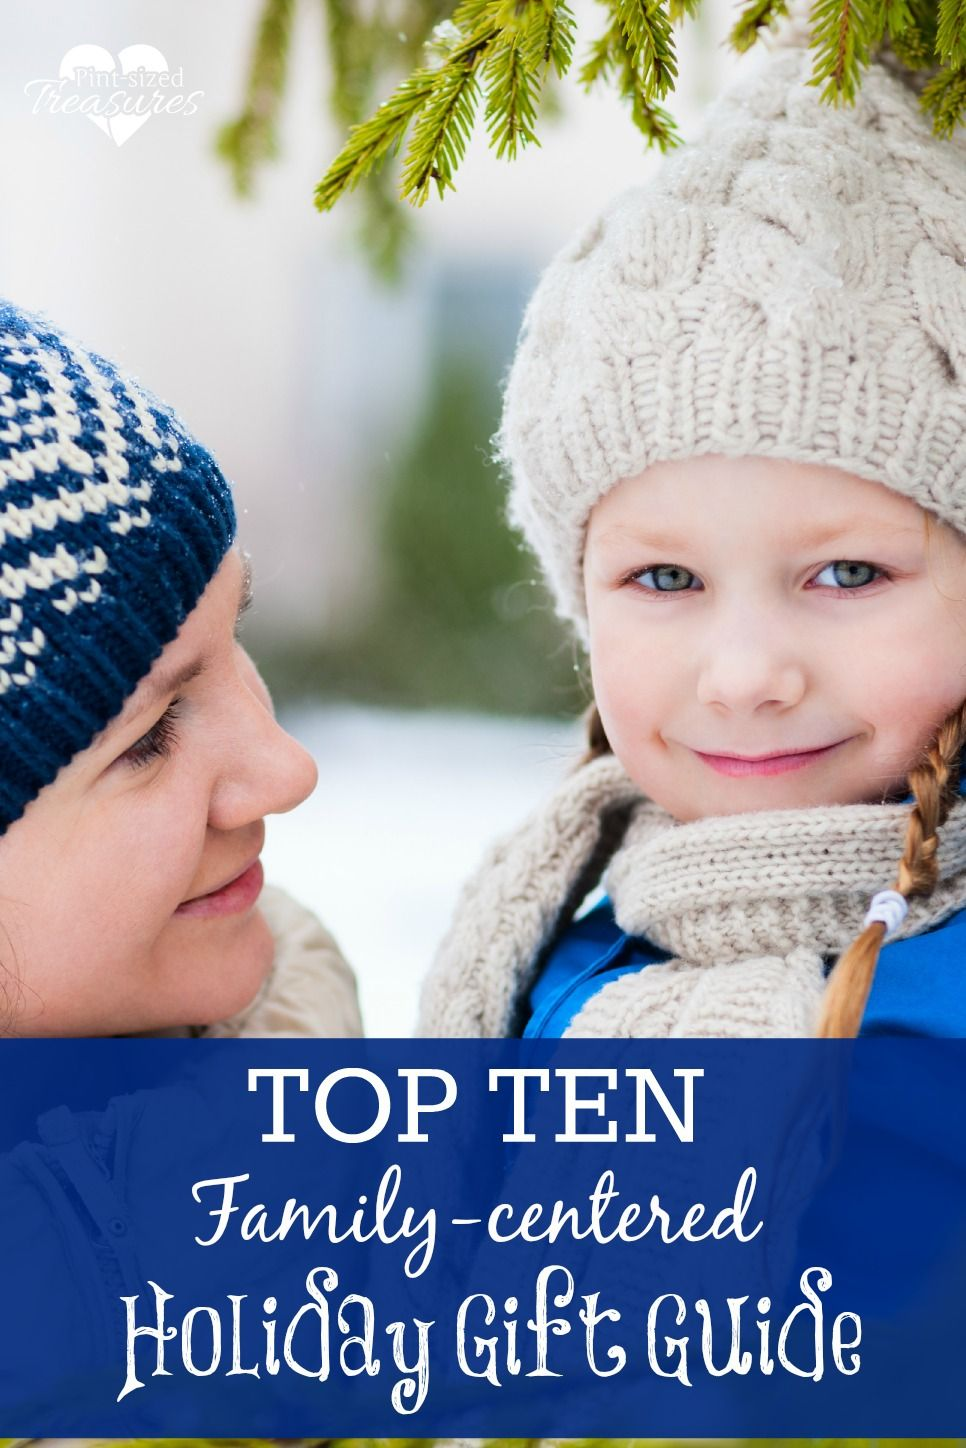 Top Ten Family-Centered Holiday Gift Guide | Holiday gift guide ...